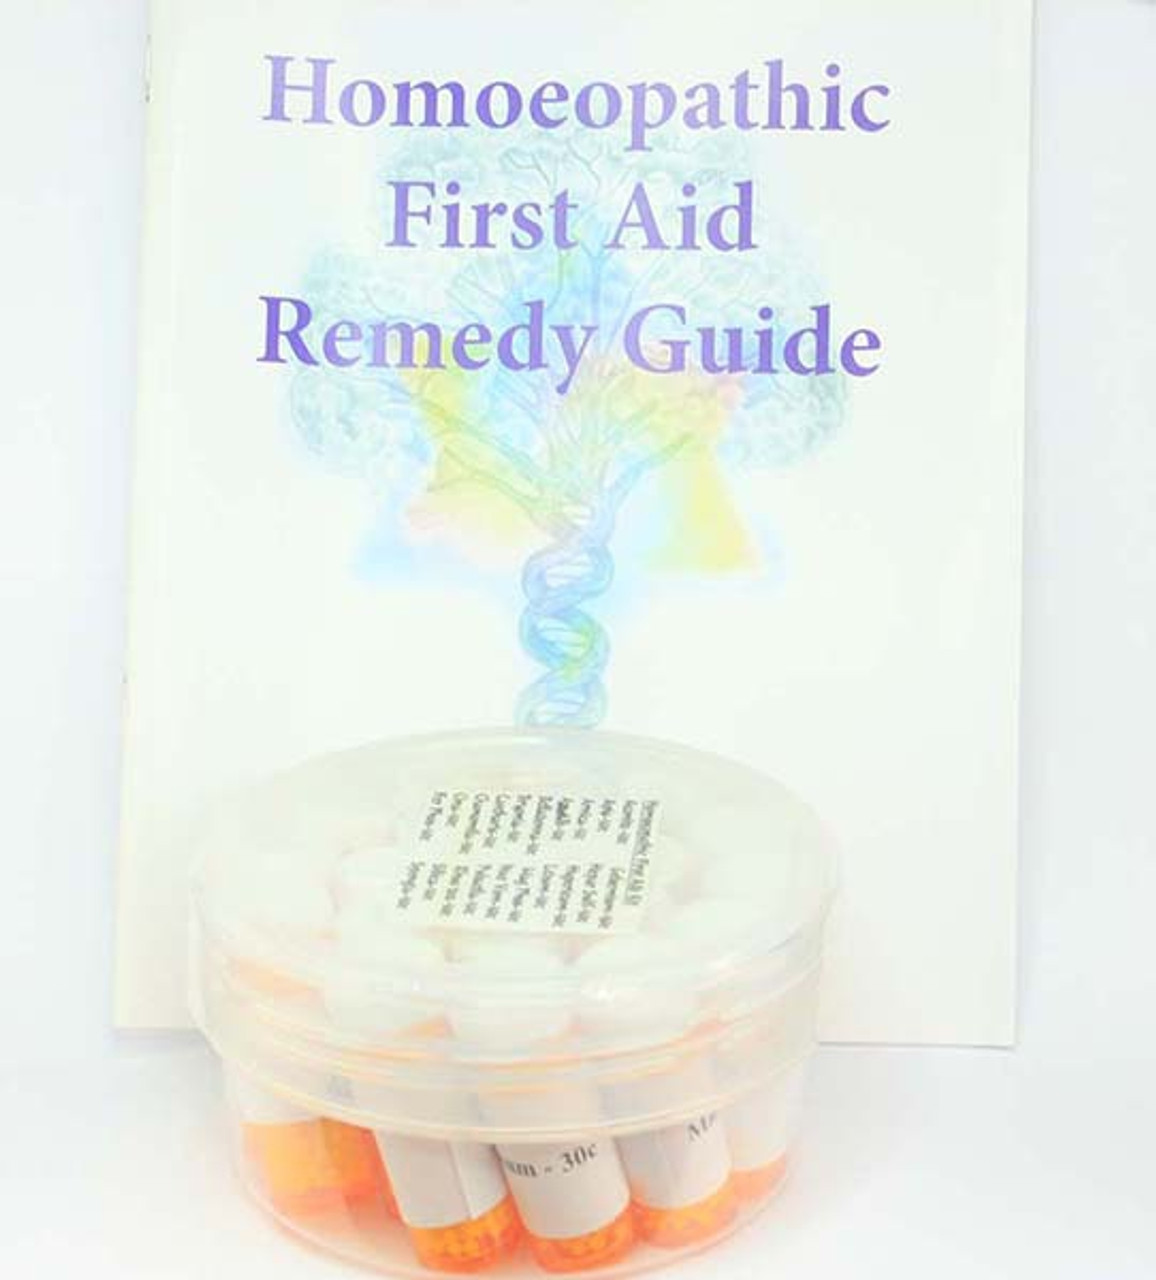 Homoeopathic First Aid Kits